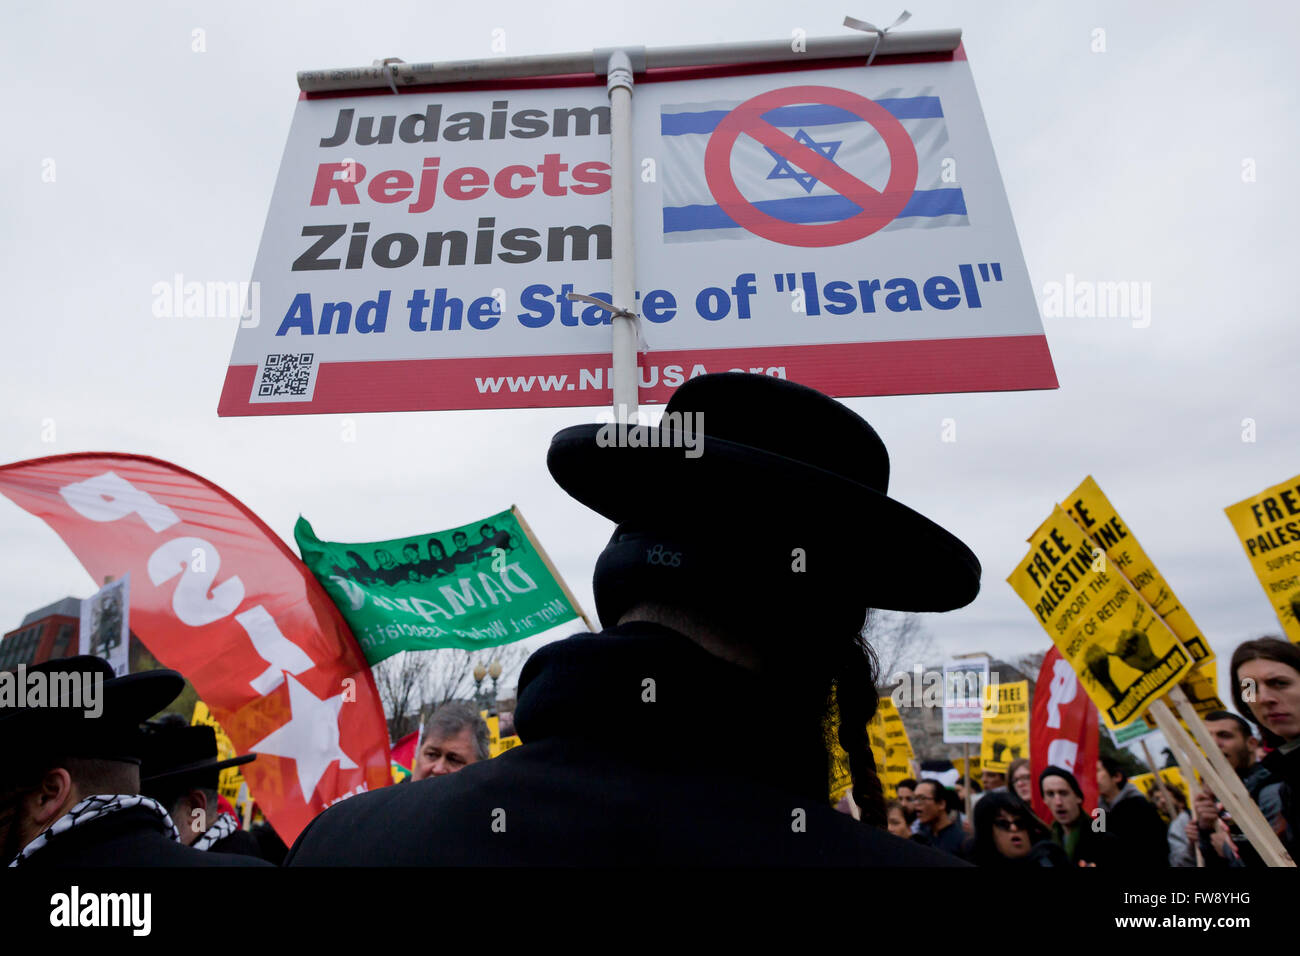 Neturei Karta religious group rallying against Zionism - Washington, DC USA - Stock Image